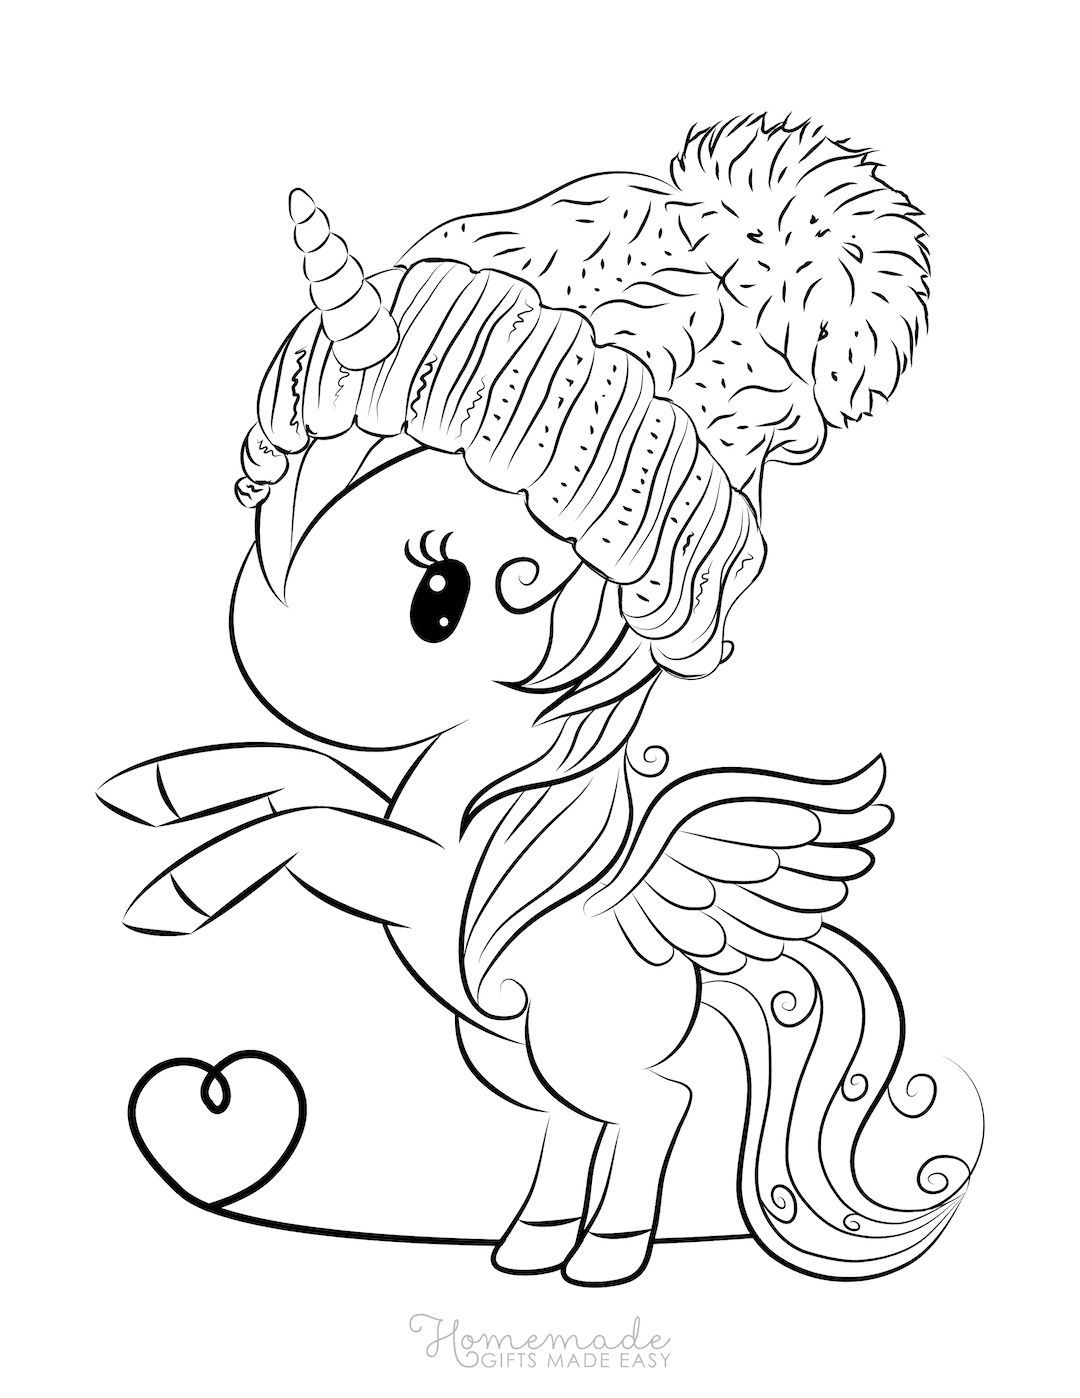 75 Magical Unicorn Coloring Pages For Kids Adults Free Printables Unicorn Coloring Pages Coloring Pages Birthday Coloring Pages